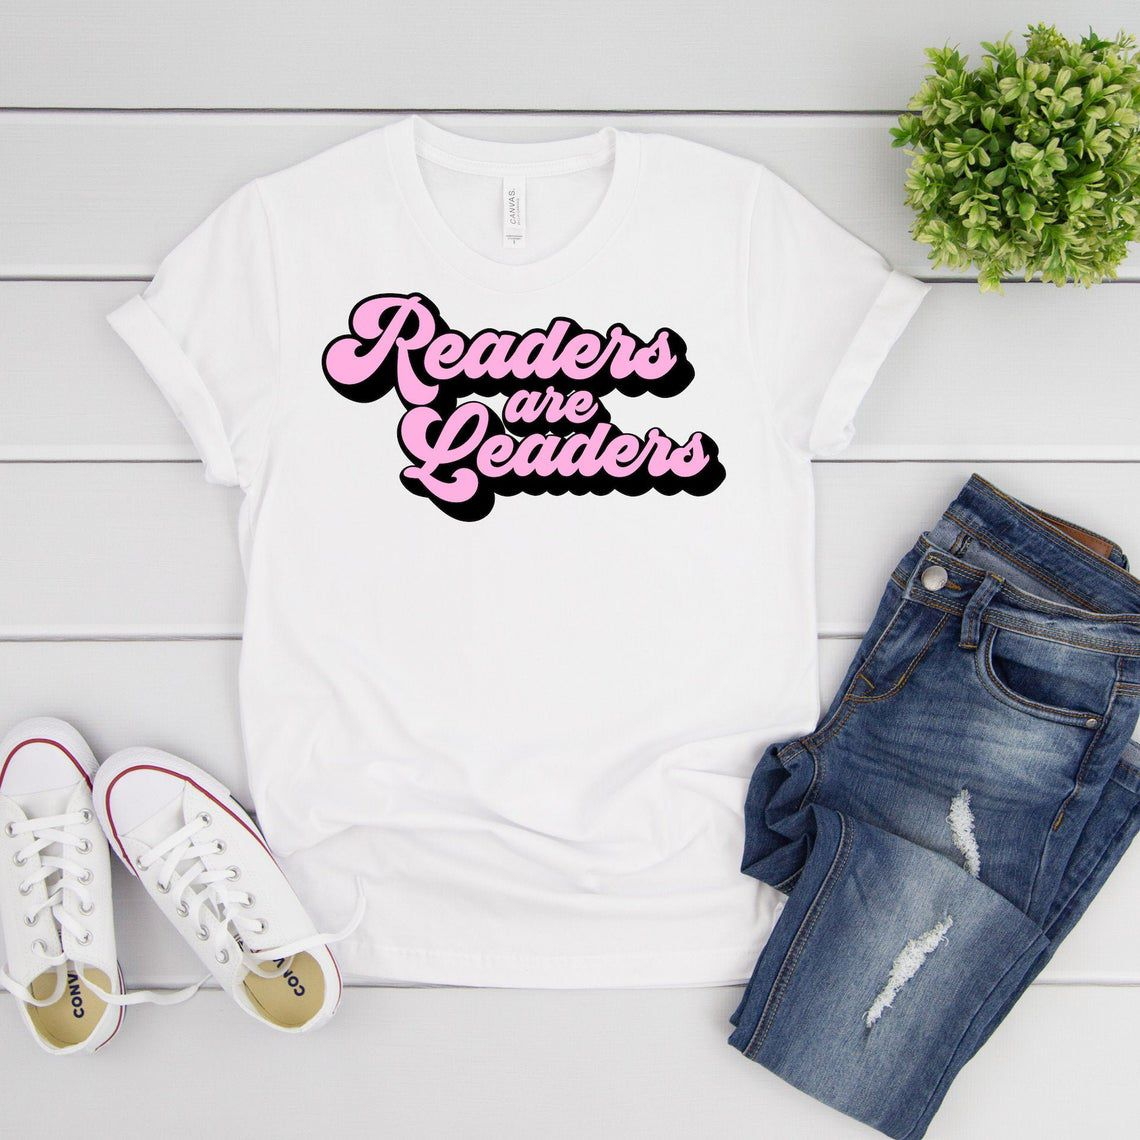 shirt with bubble letters spelling readers are leaders